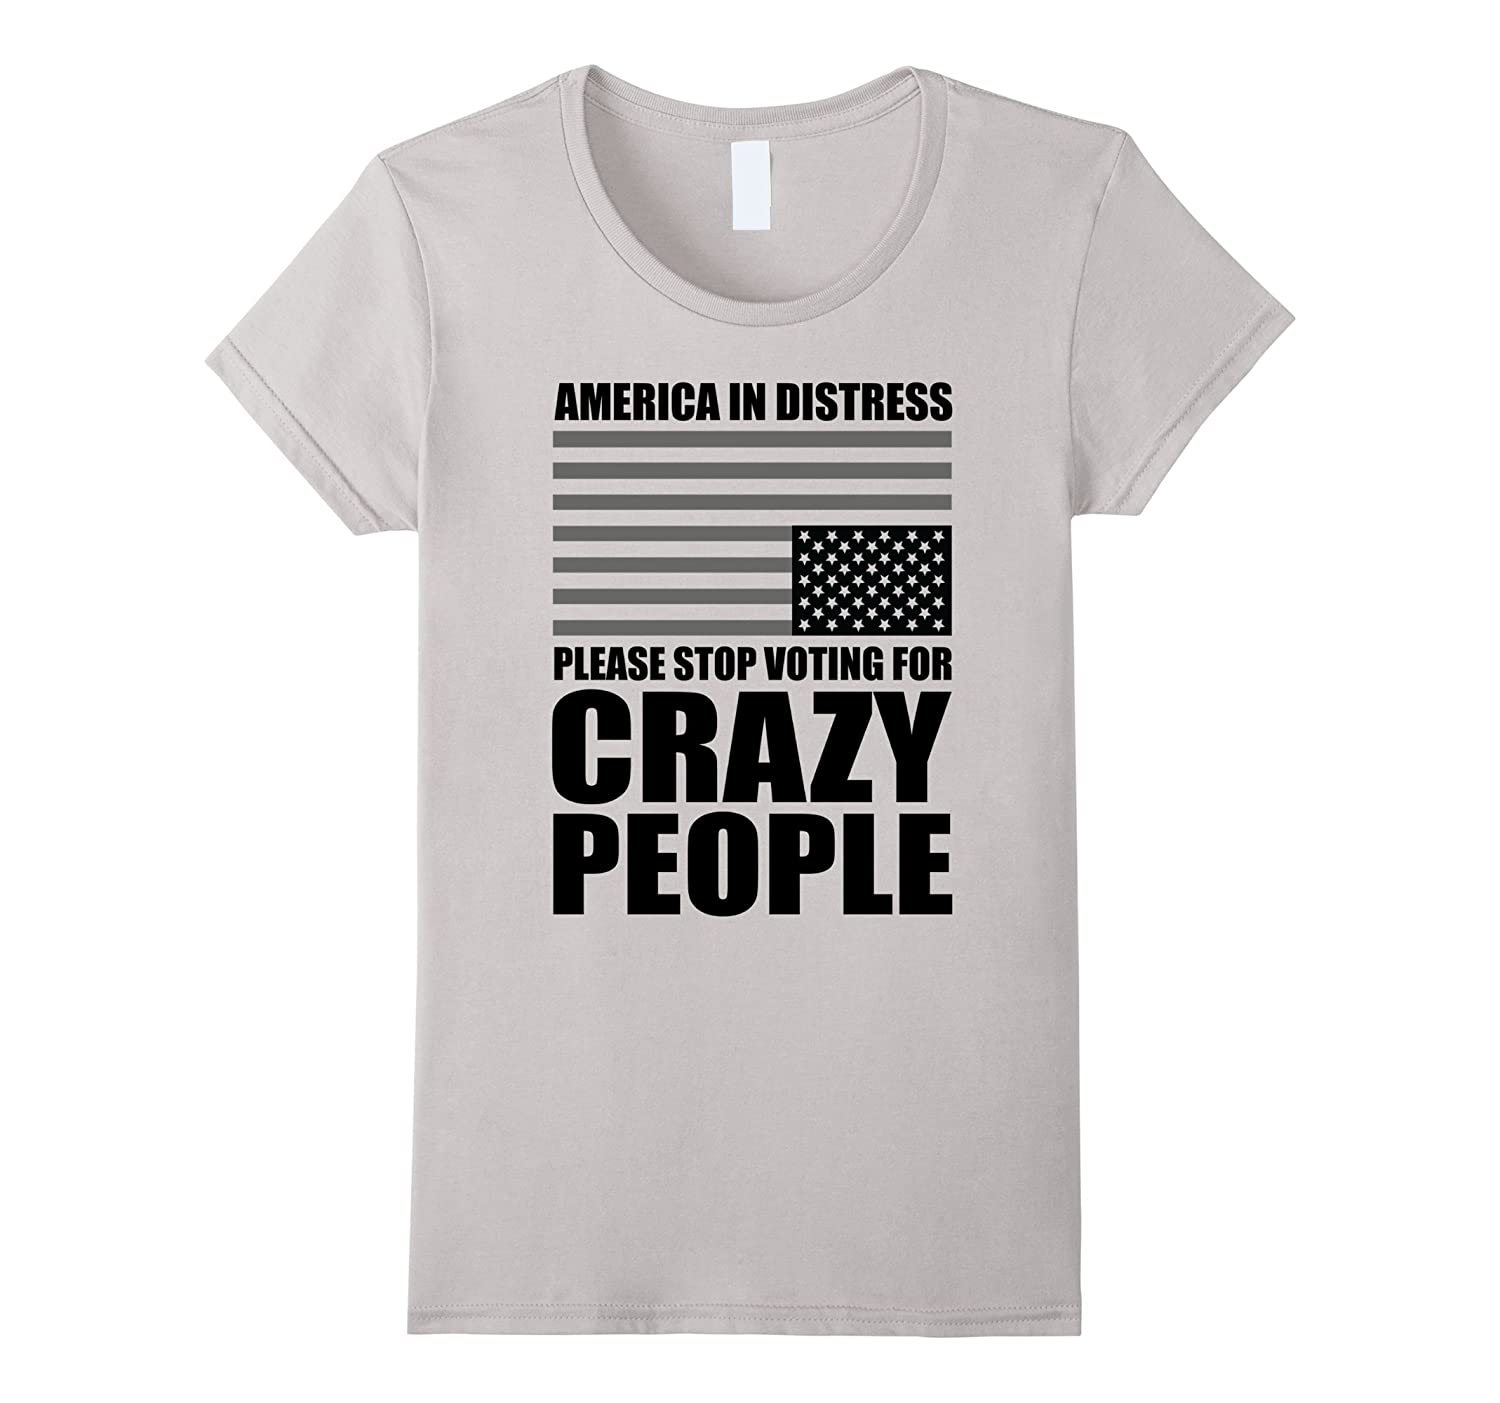 America in Distress – Stop Voting for Crazy People T-Shirt